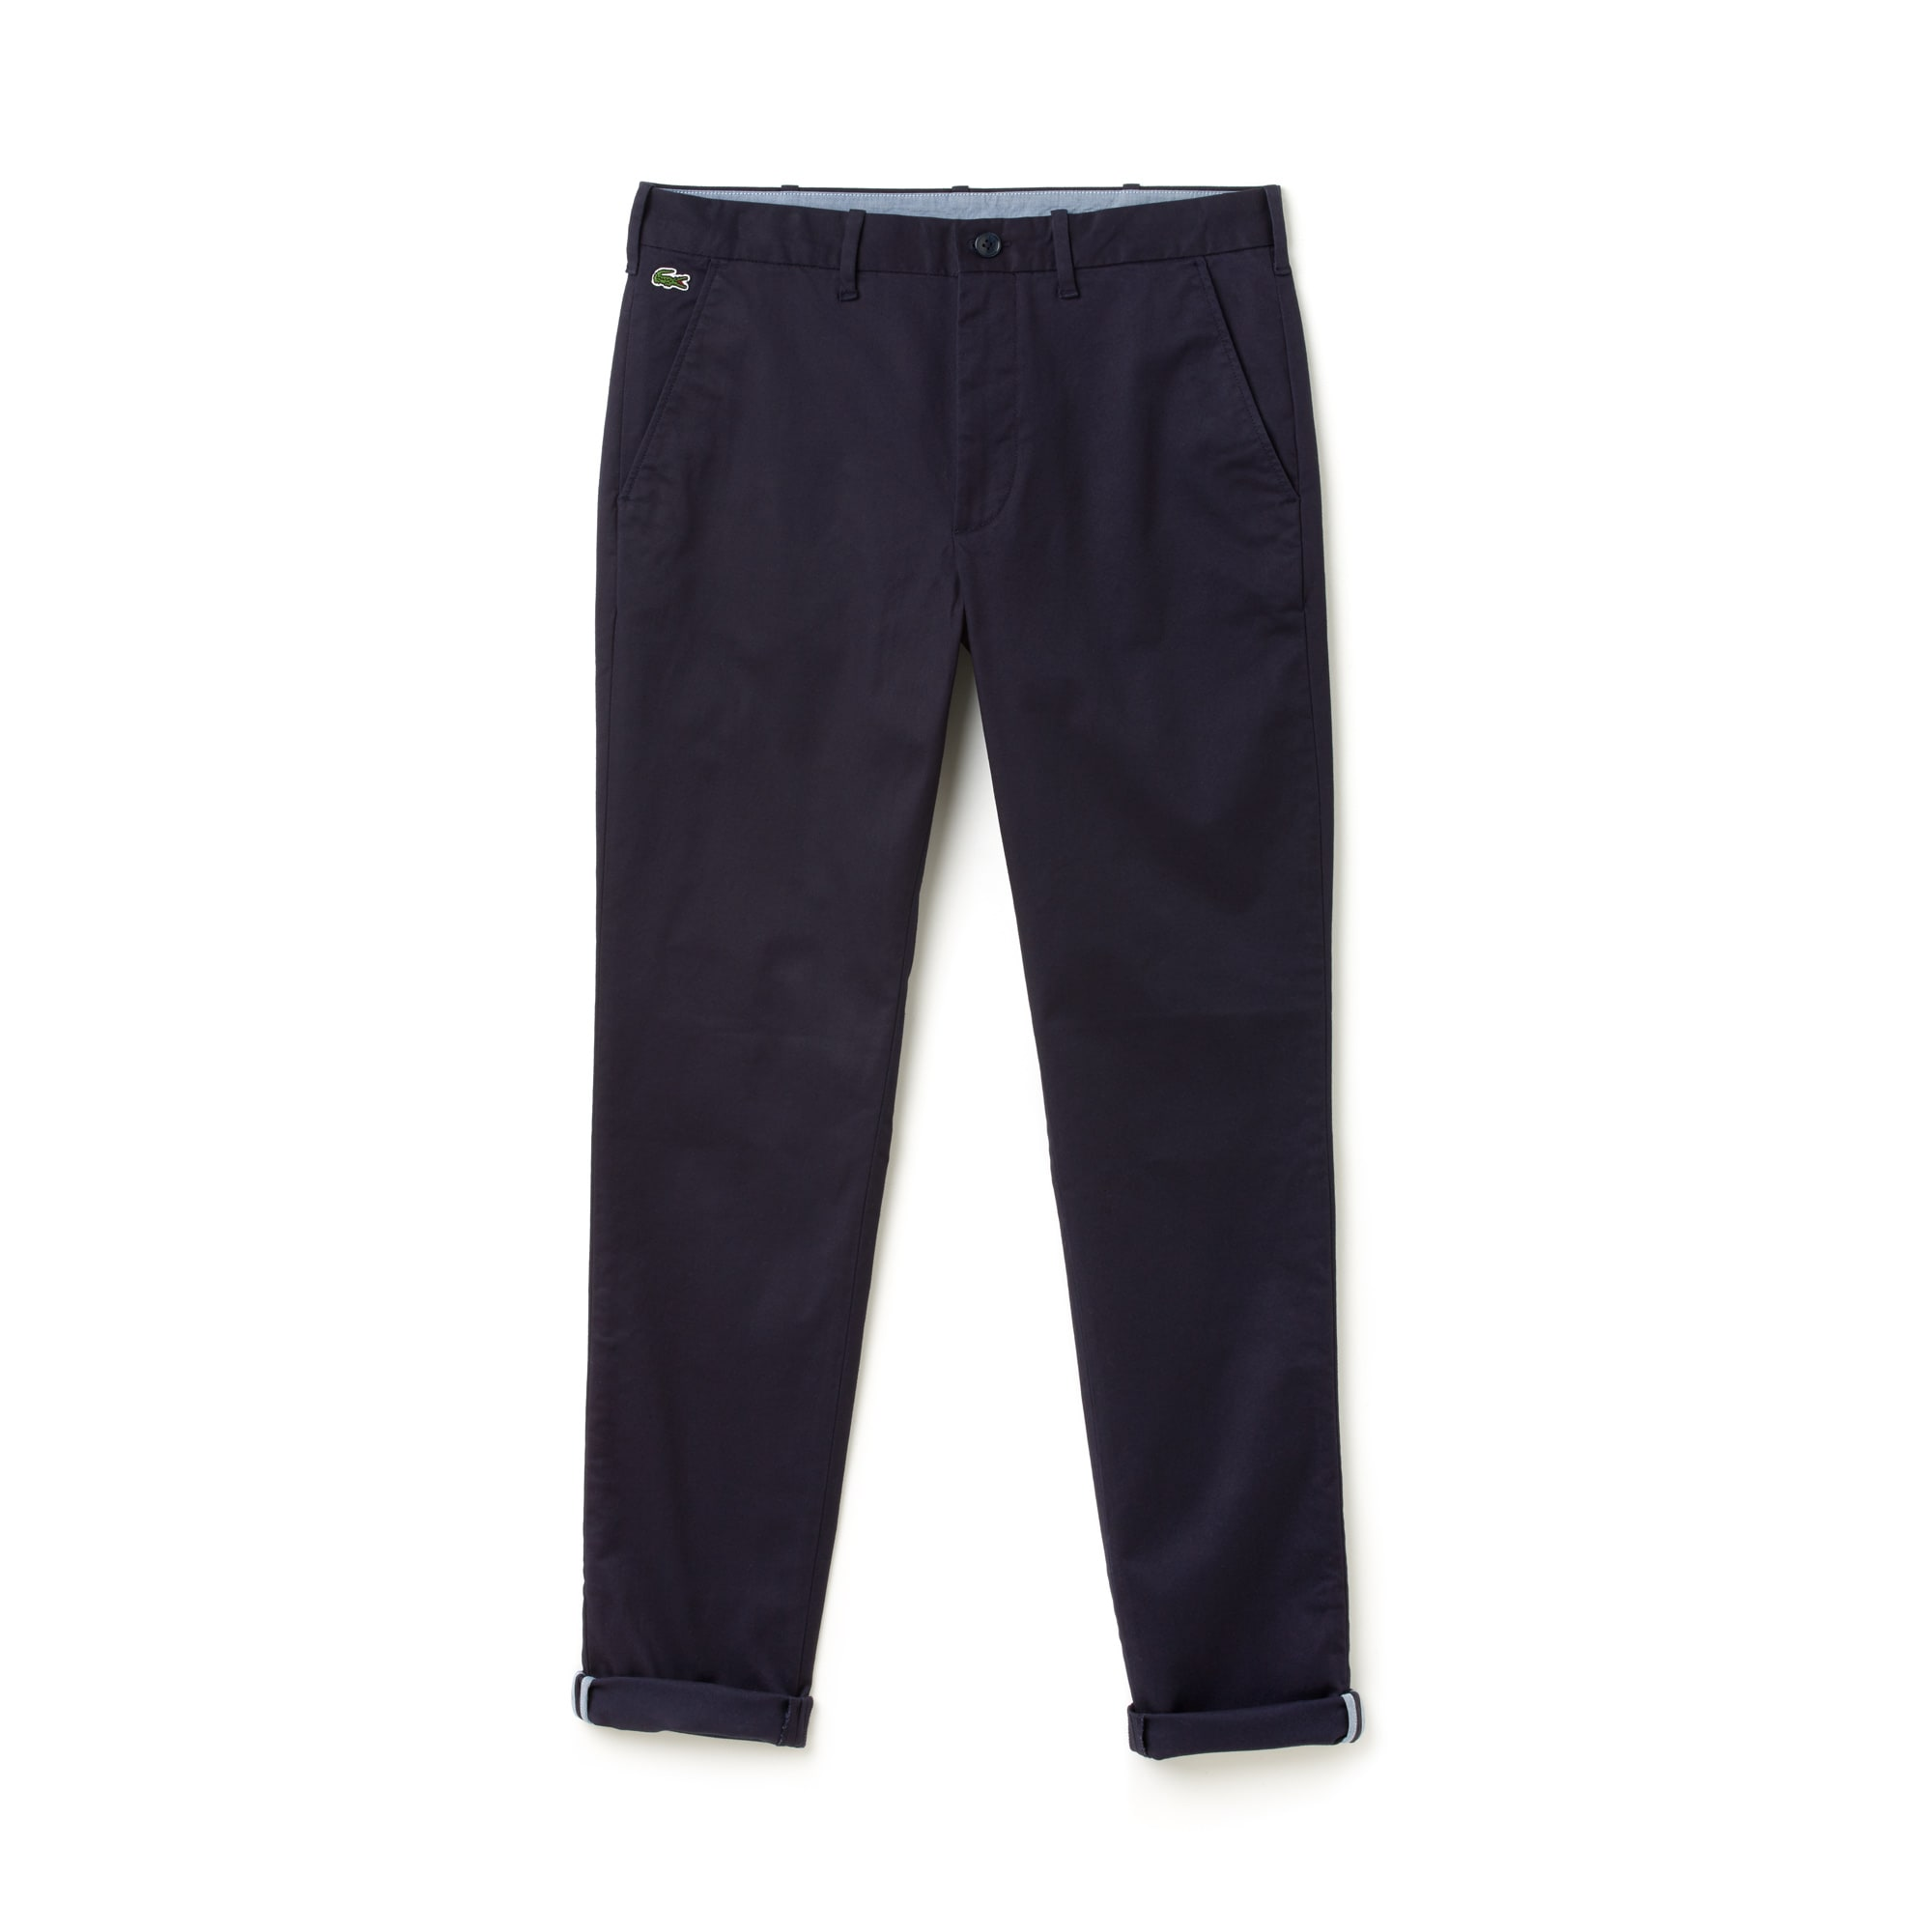 Pantalon chino Lacoste LIVE en twill stretch uni